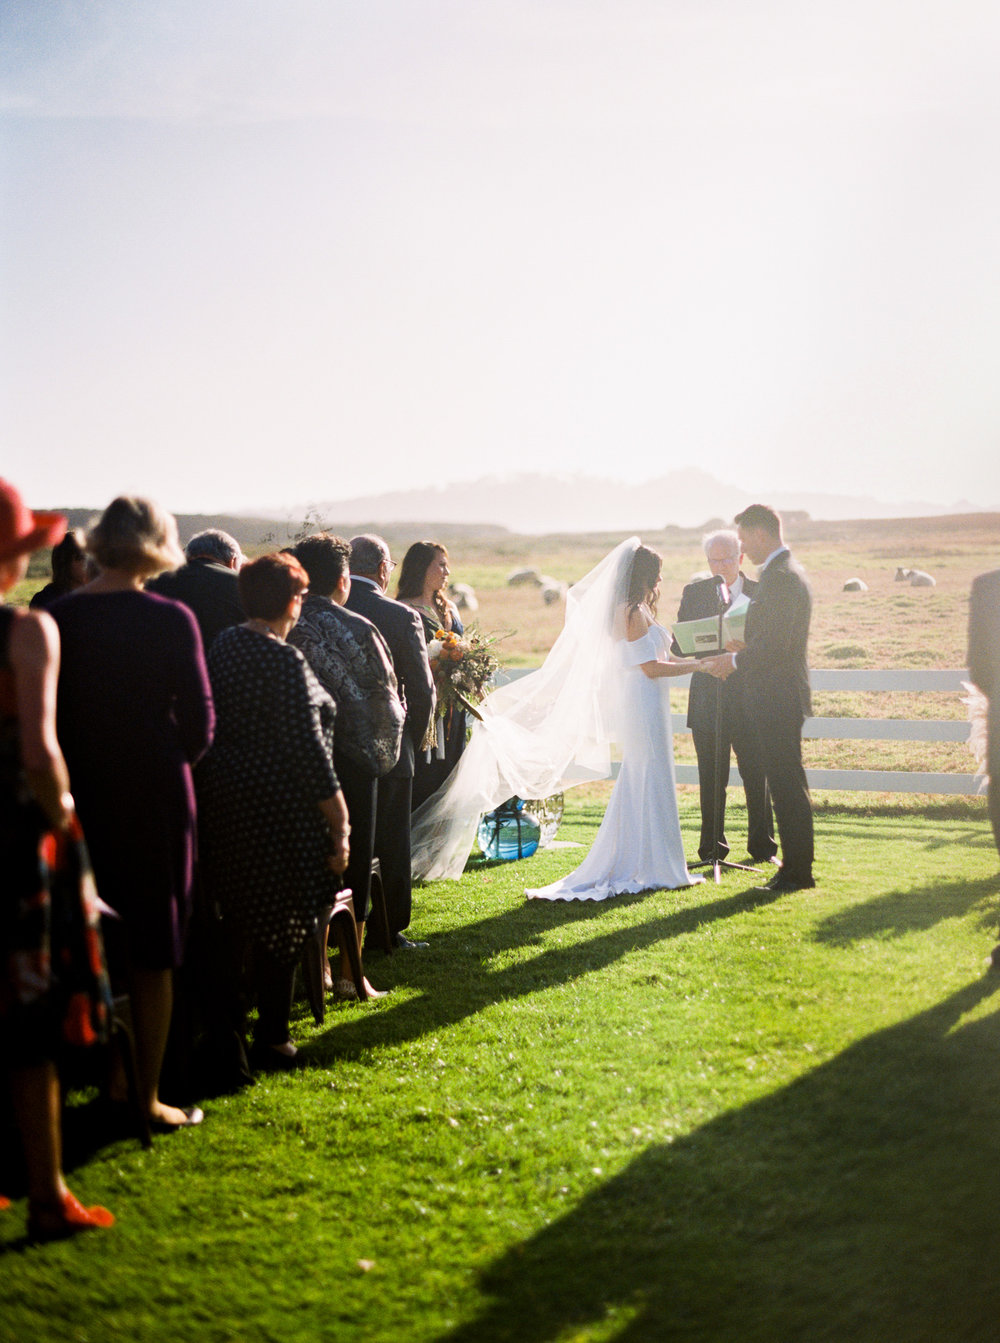 057carmel_california_destination_wedding_photography_wedding_videography_mission_ranch.jpg